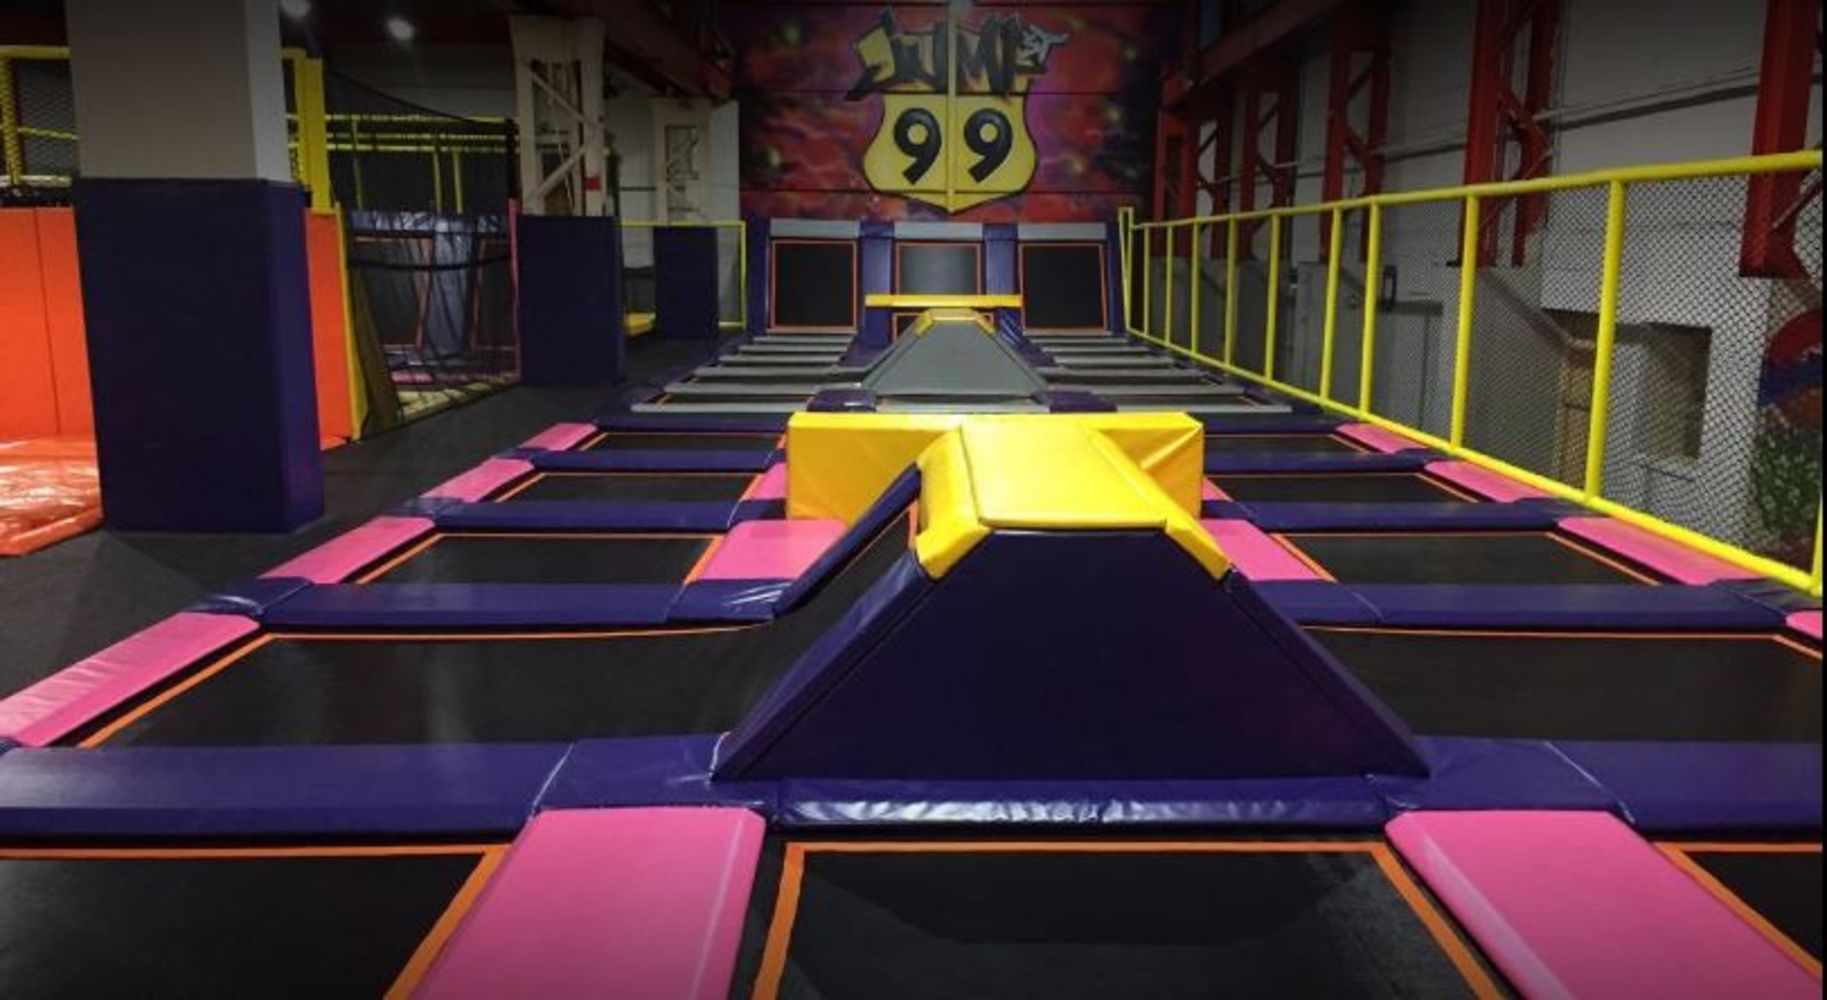 Indoor Trampoline Park, 99 Jump Sheffield